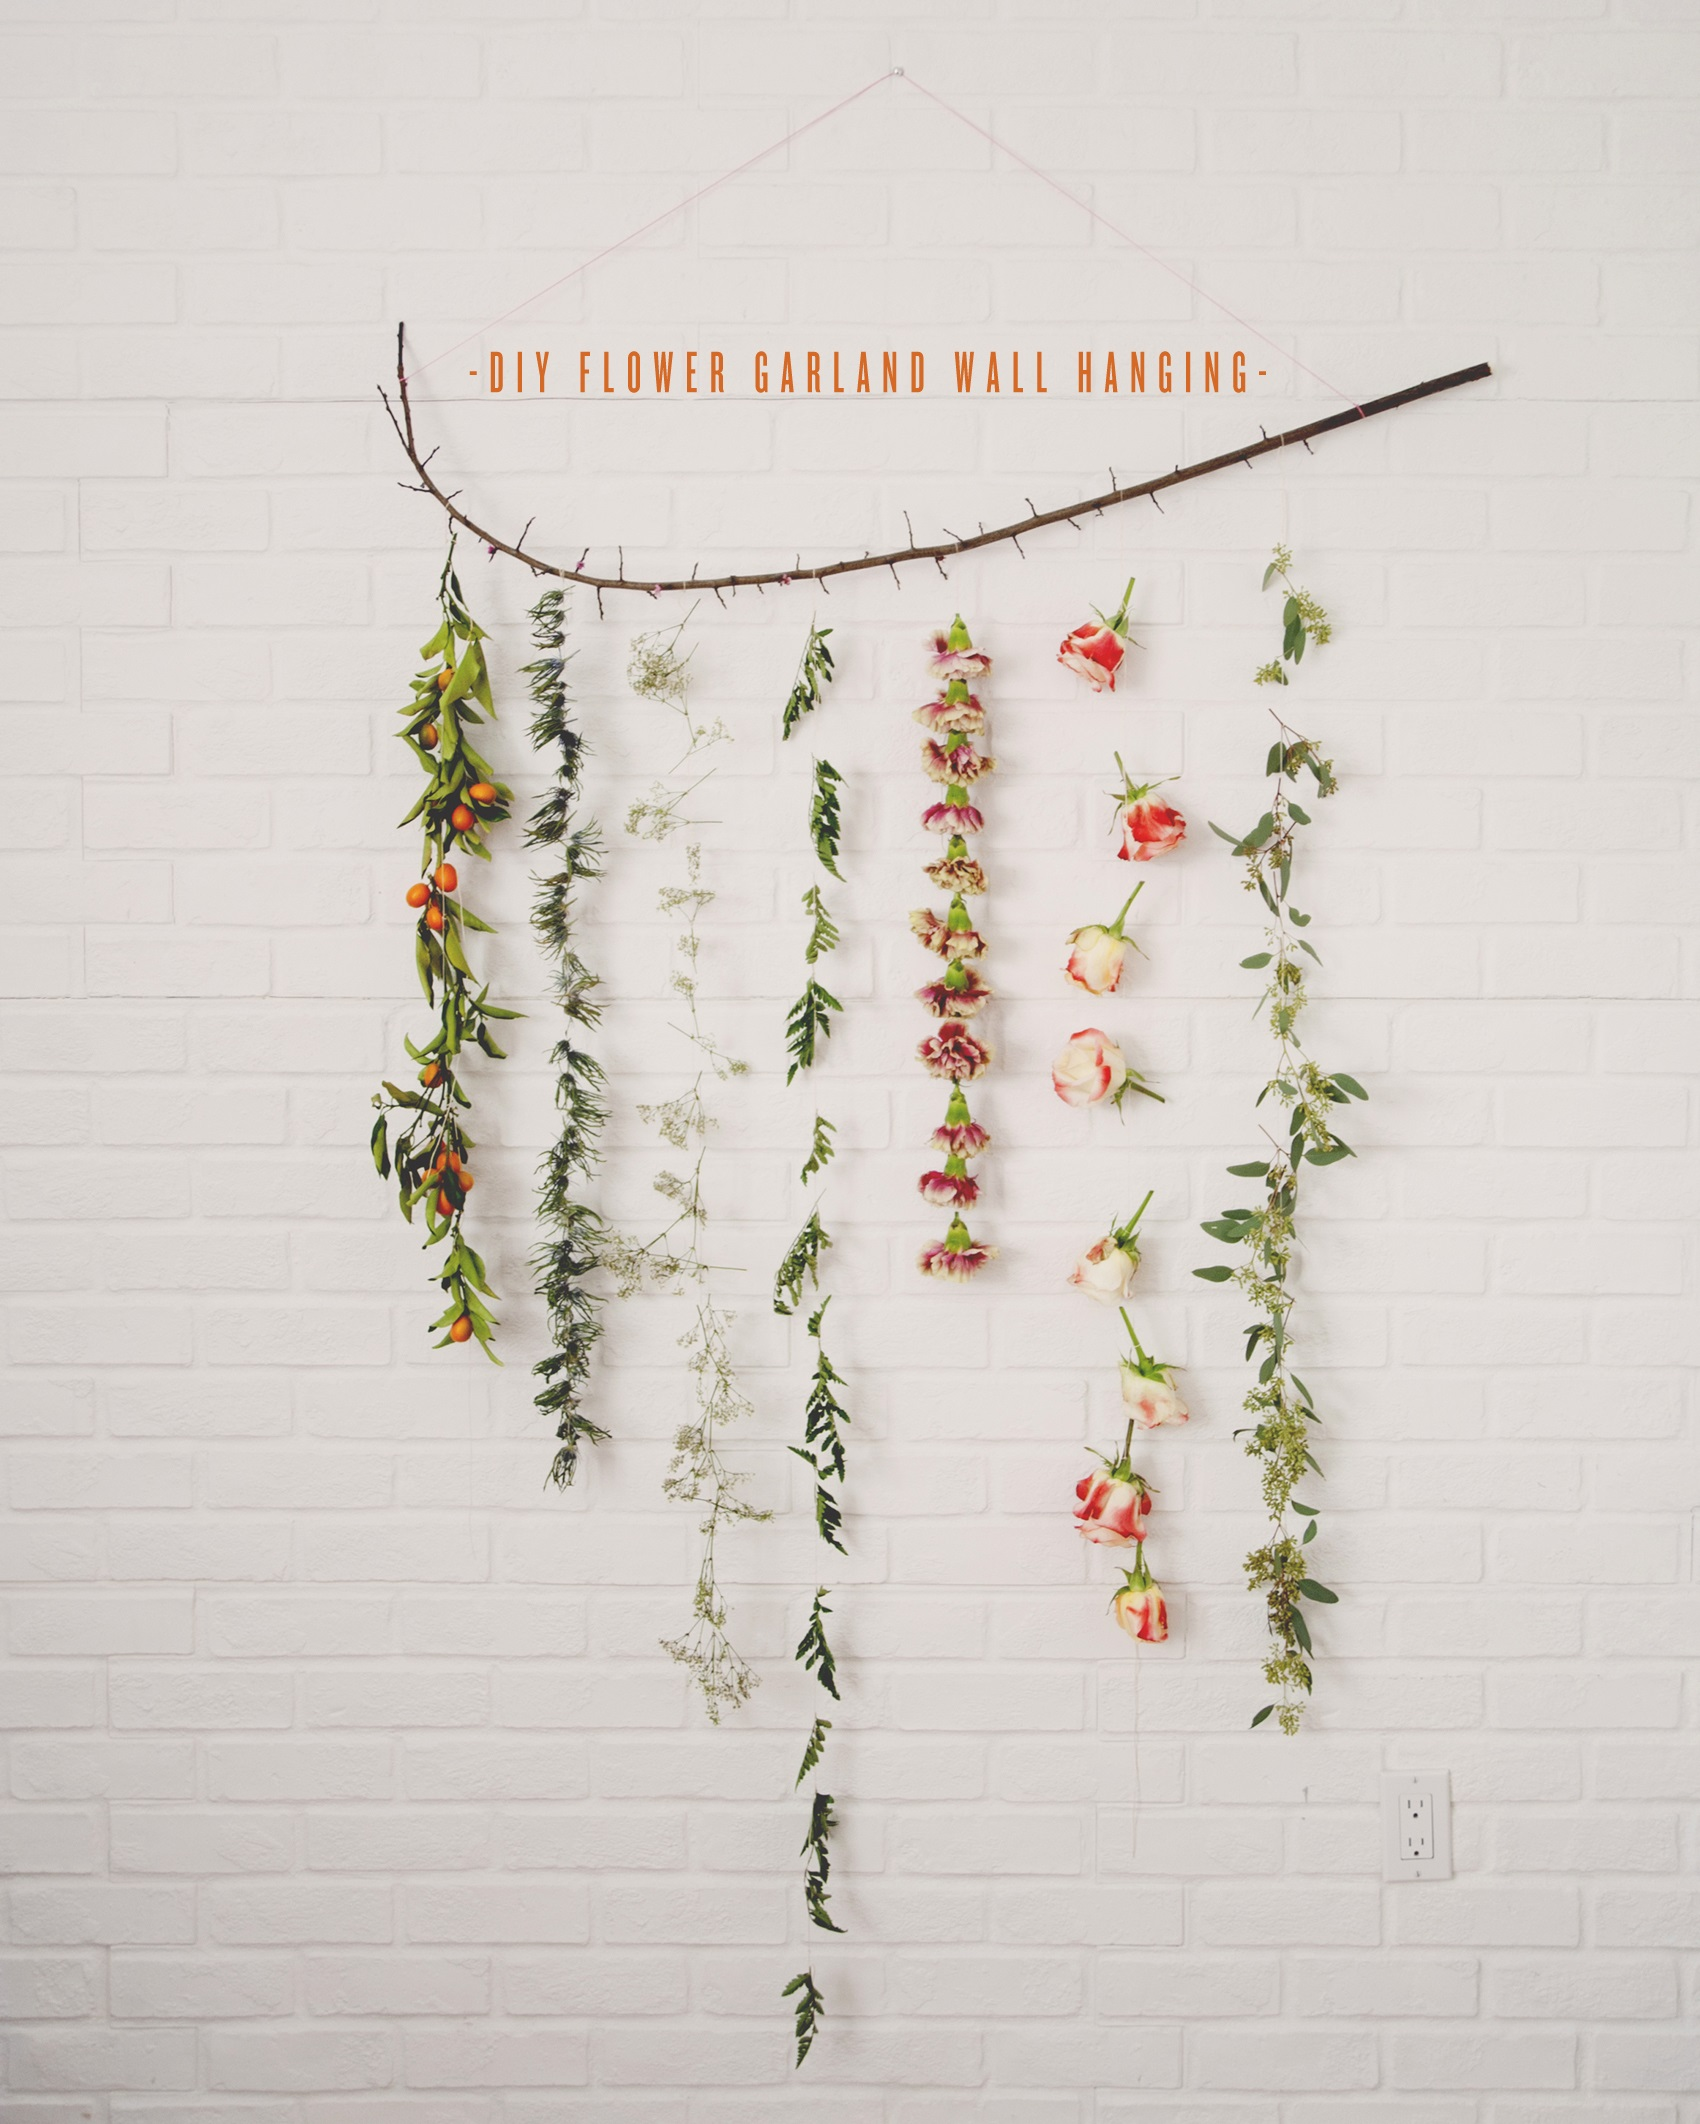 diy flower garland handmade diy flower decorations6